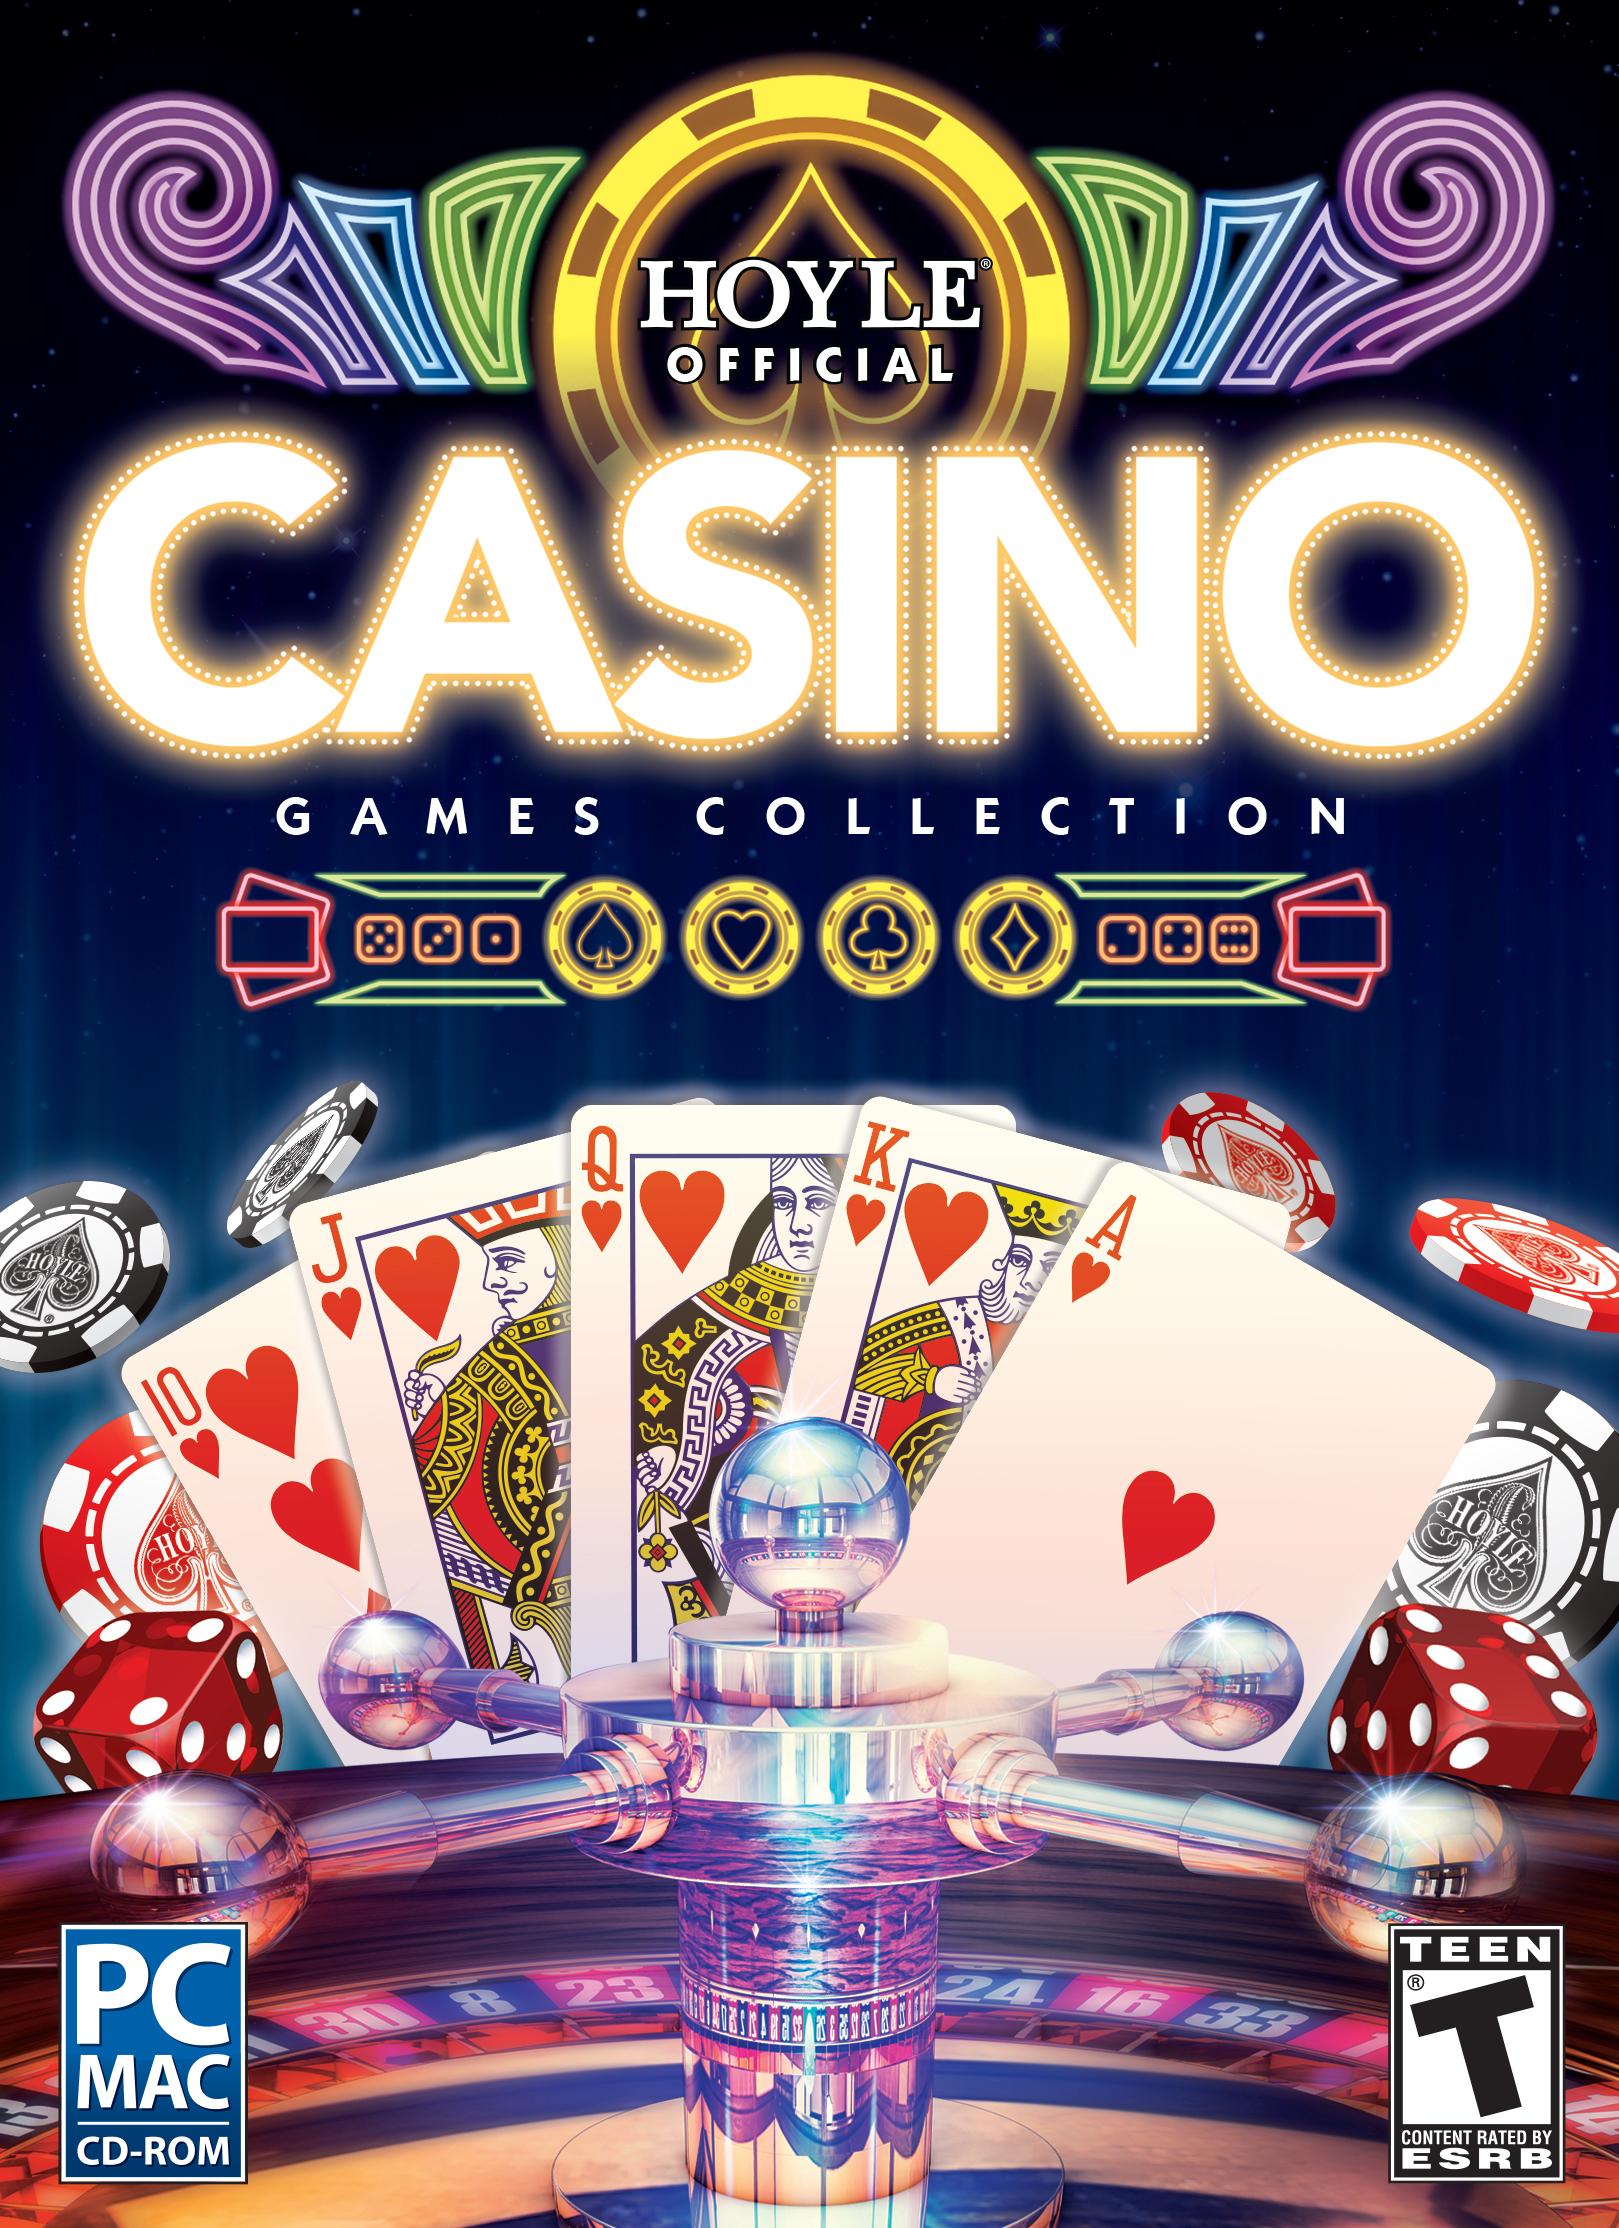 Hoyle casino games mac gambling losses year